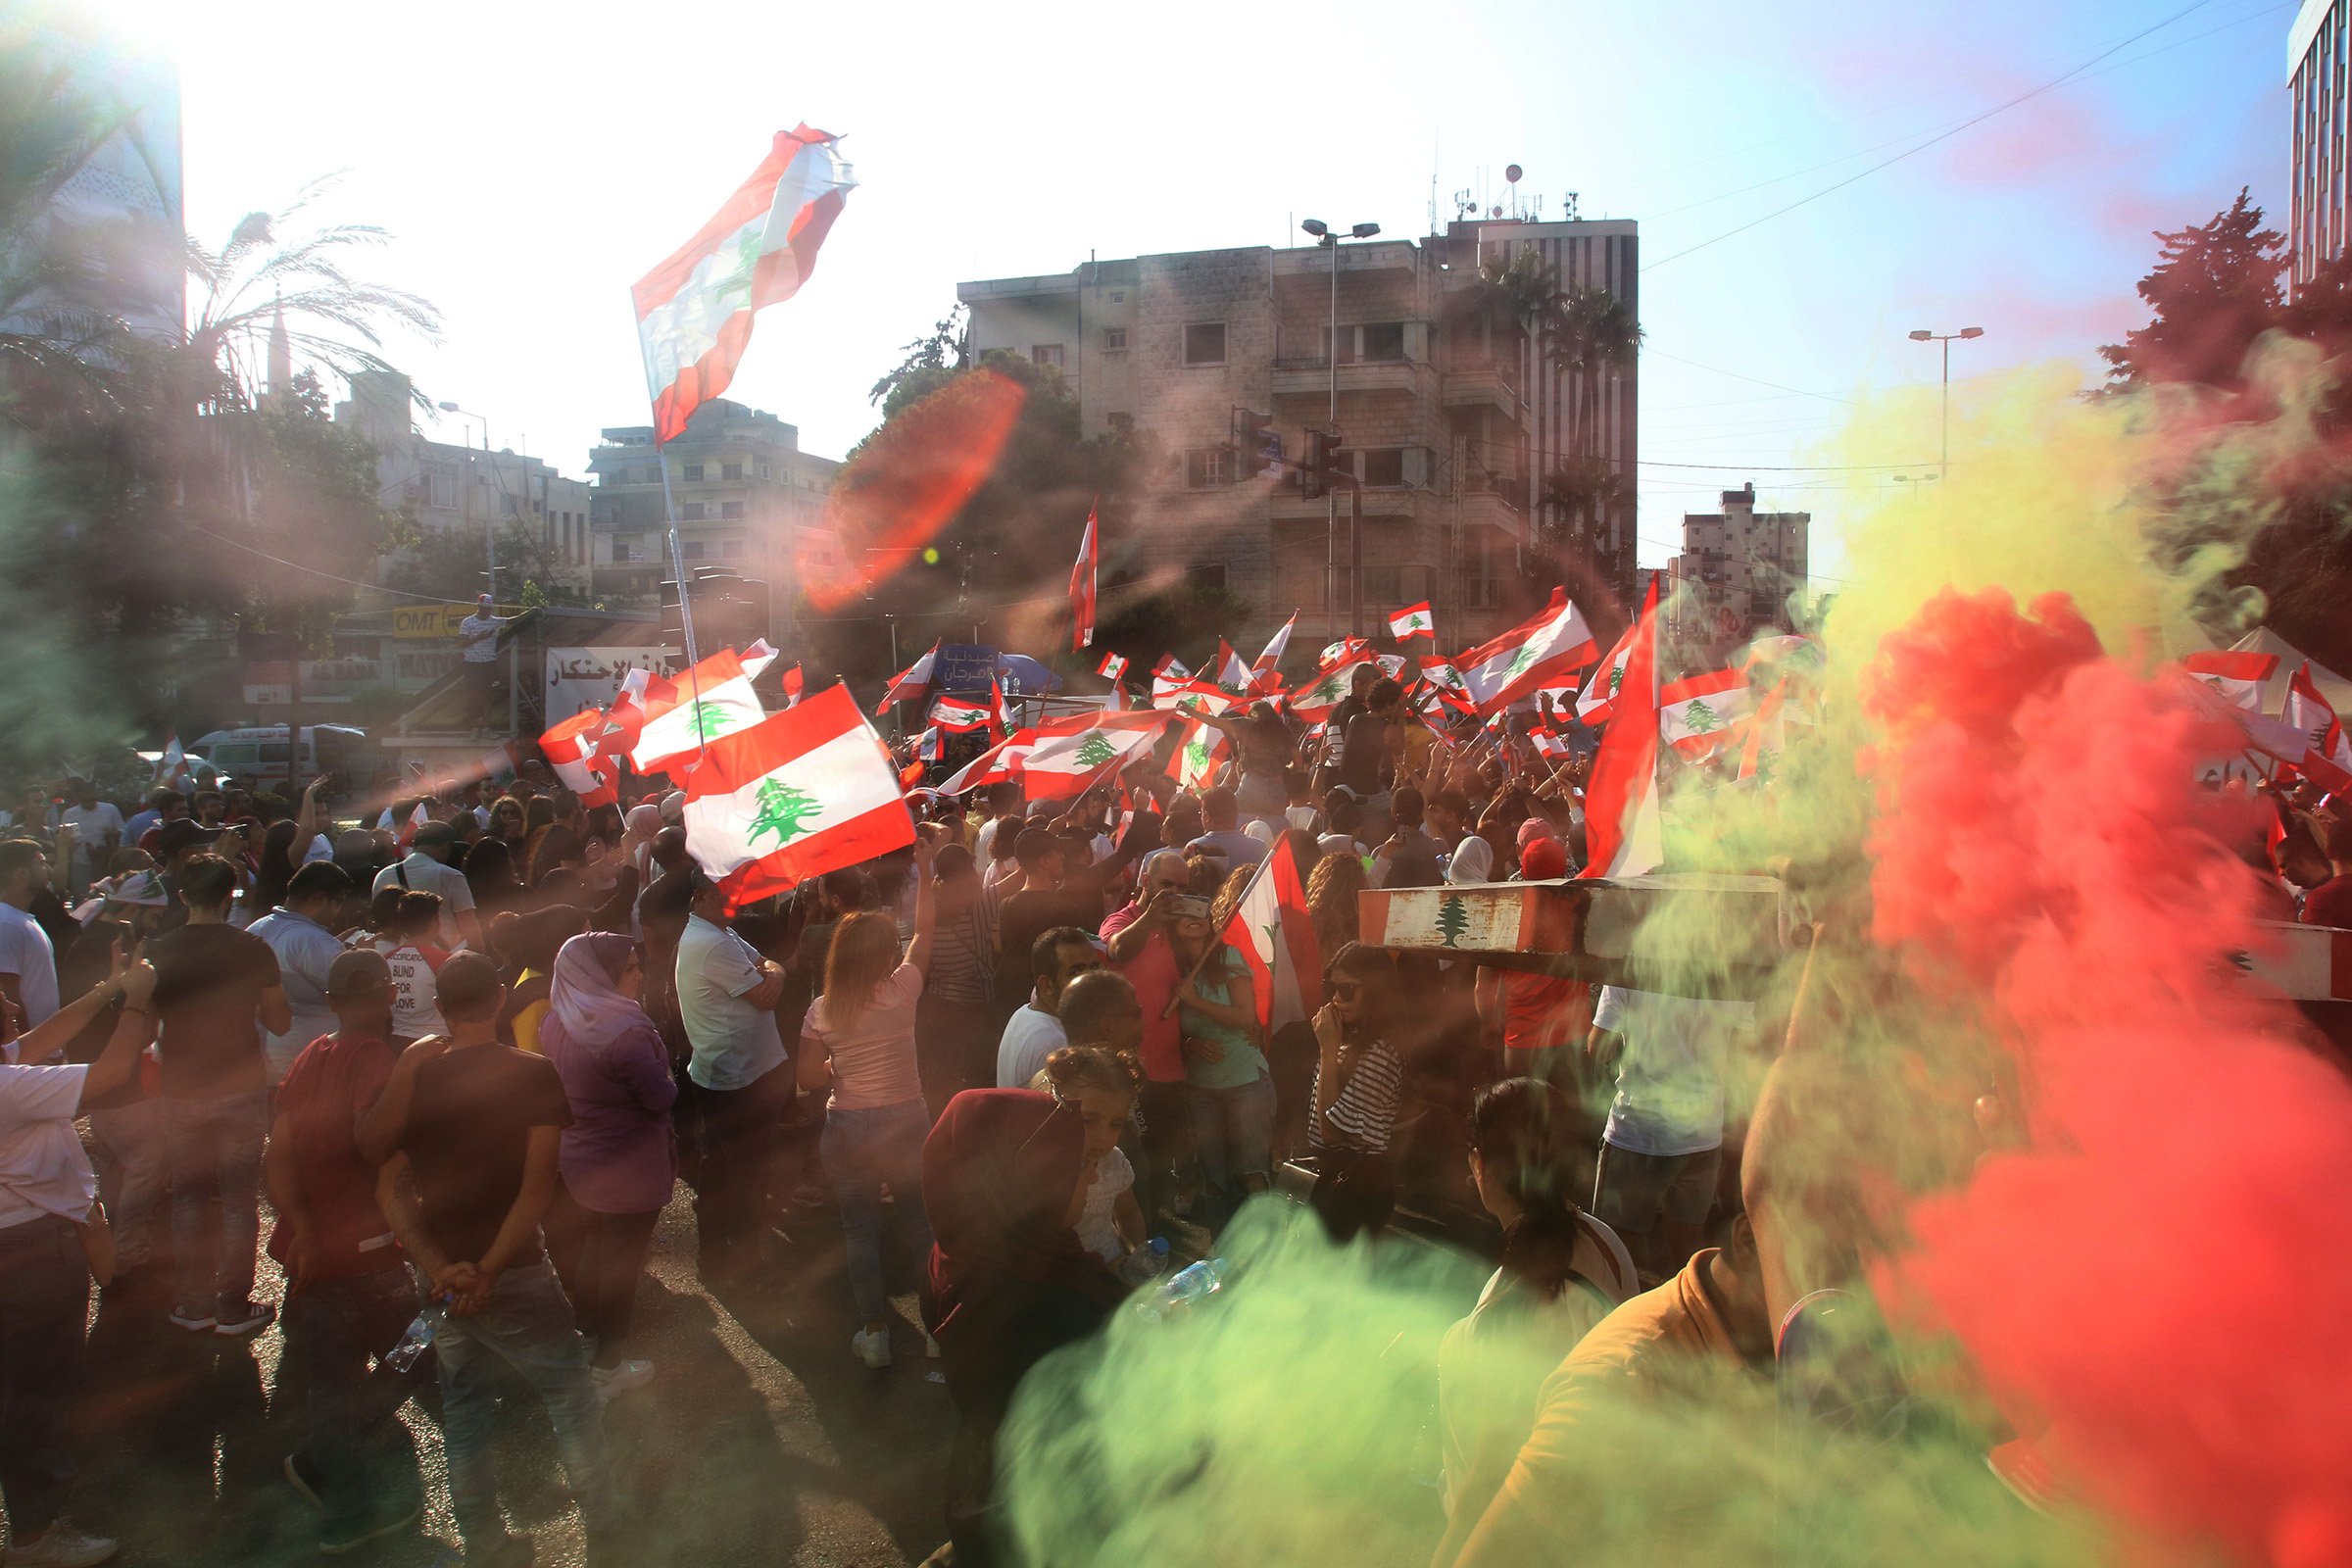 Lebanese protesters wave national flags as they gather in the southern city of Sidon (Saida) on Oct. 19, 2019 for a third day of protests.